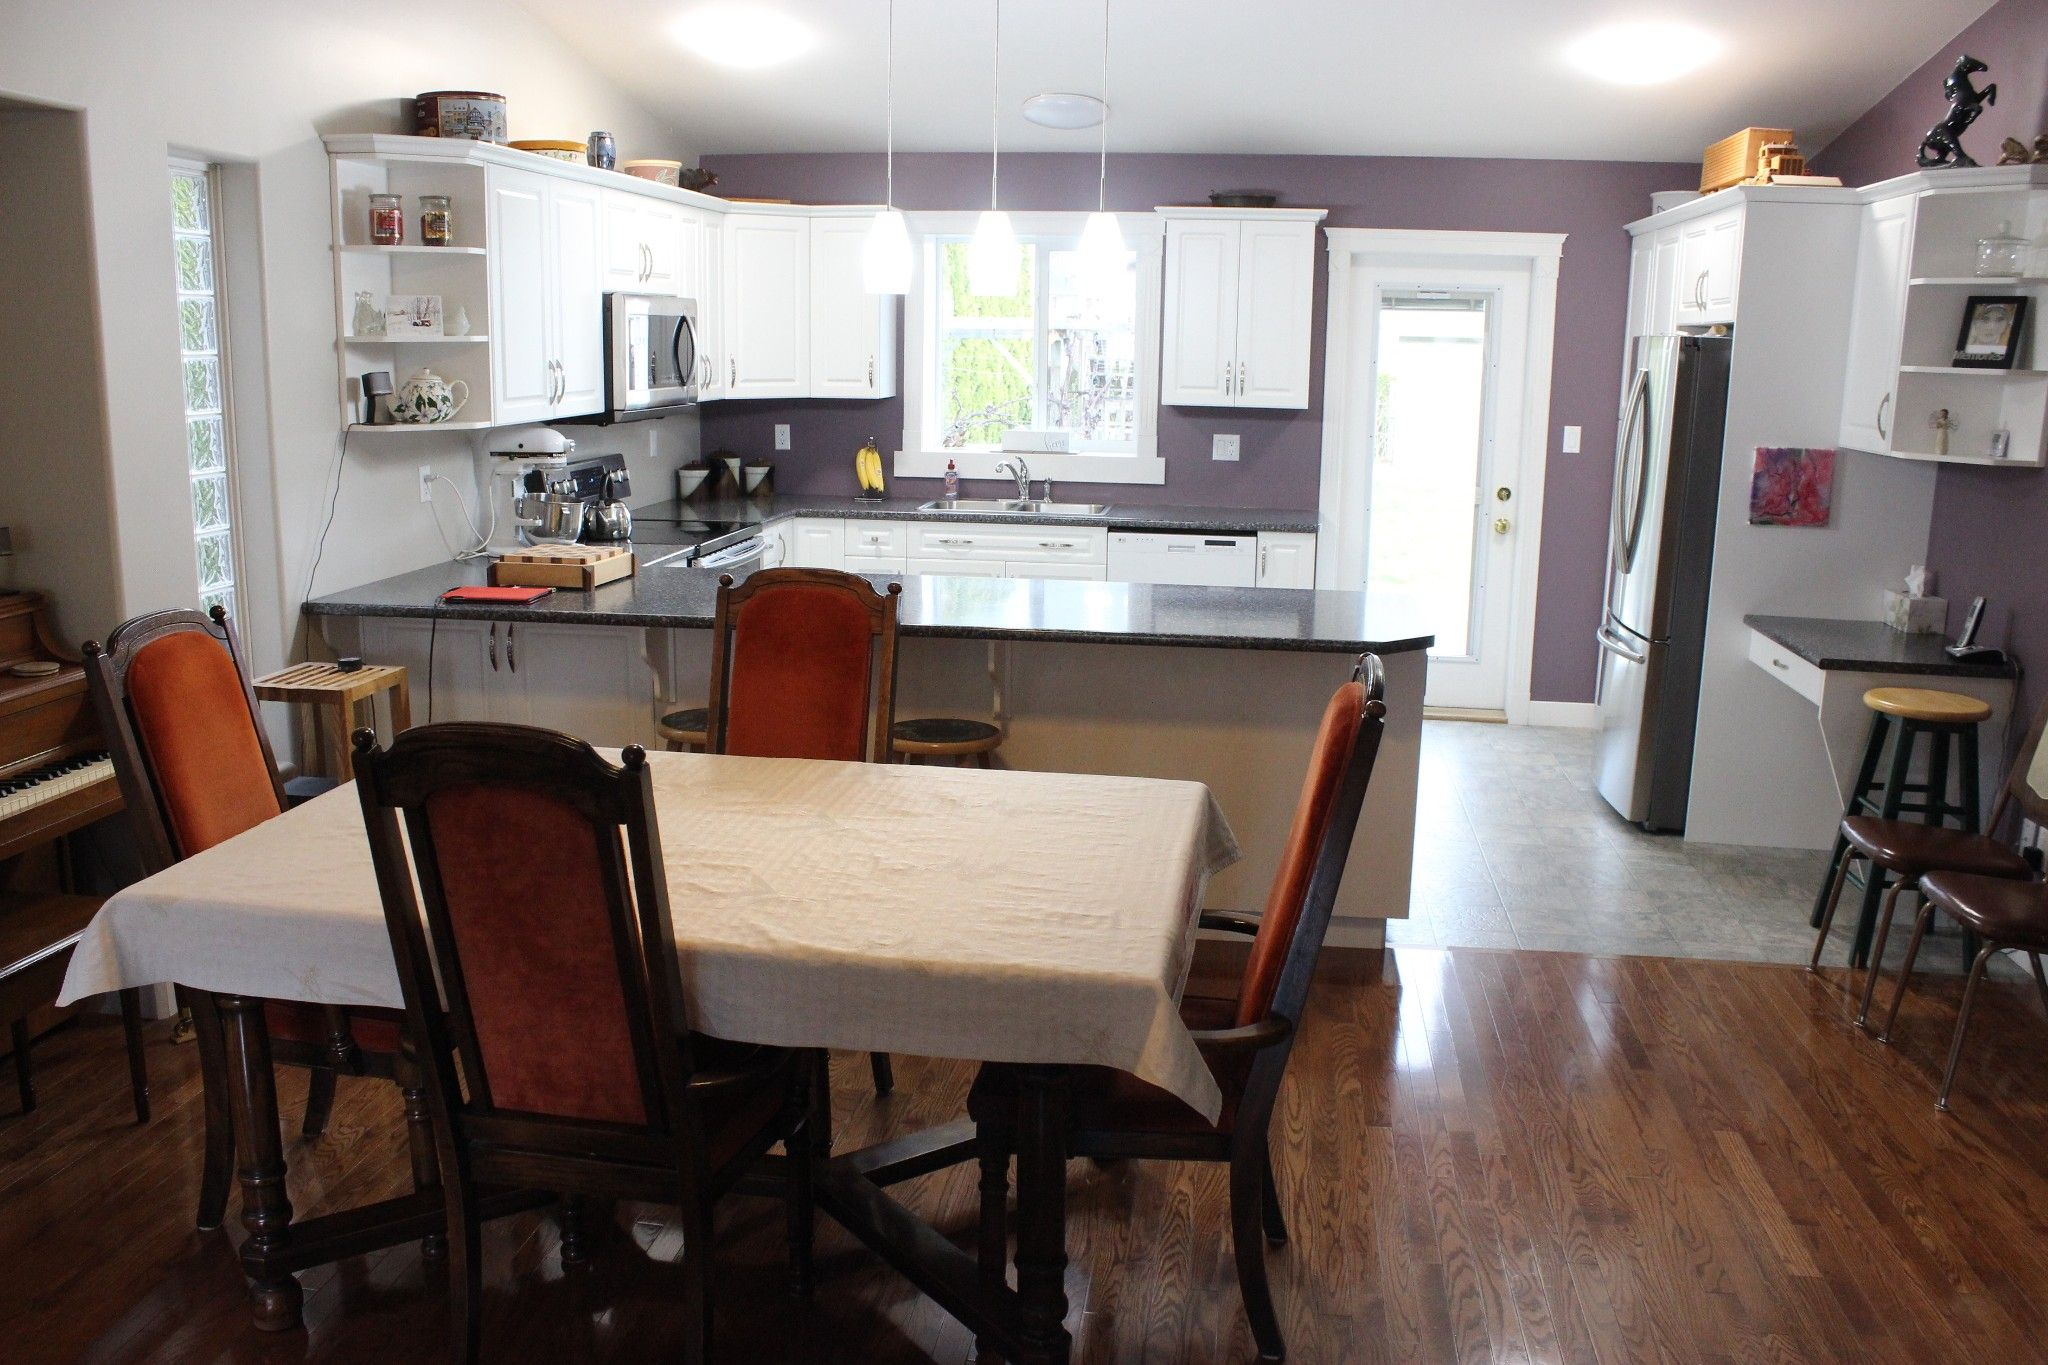 Photo 4: Photos: 351 Juniper Street in Chase: House for sale : MLS®# 151124